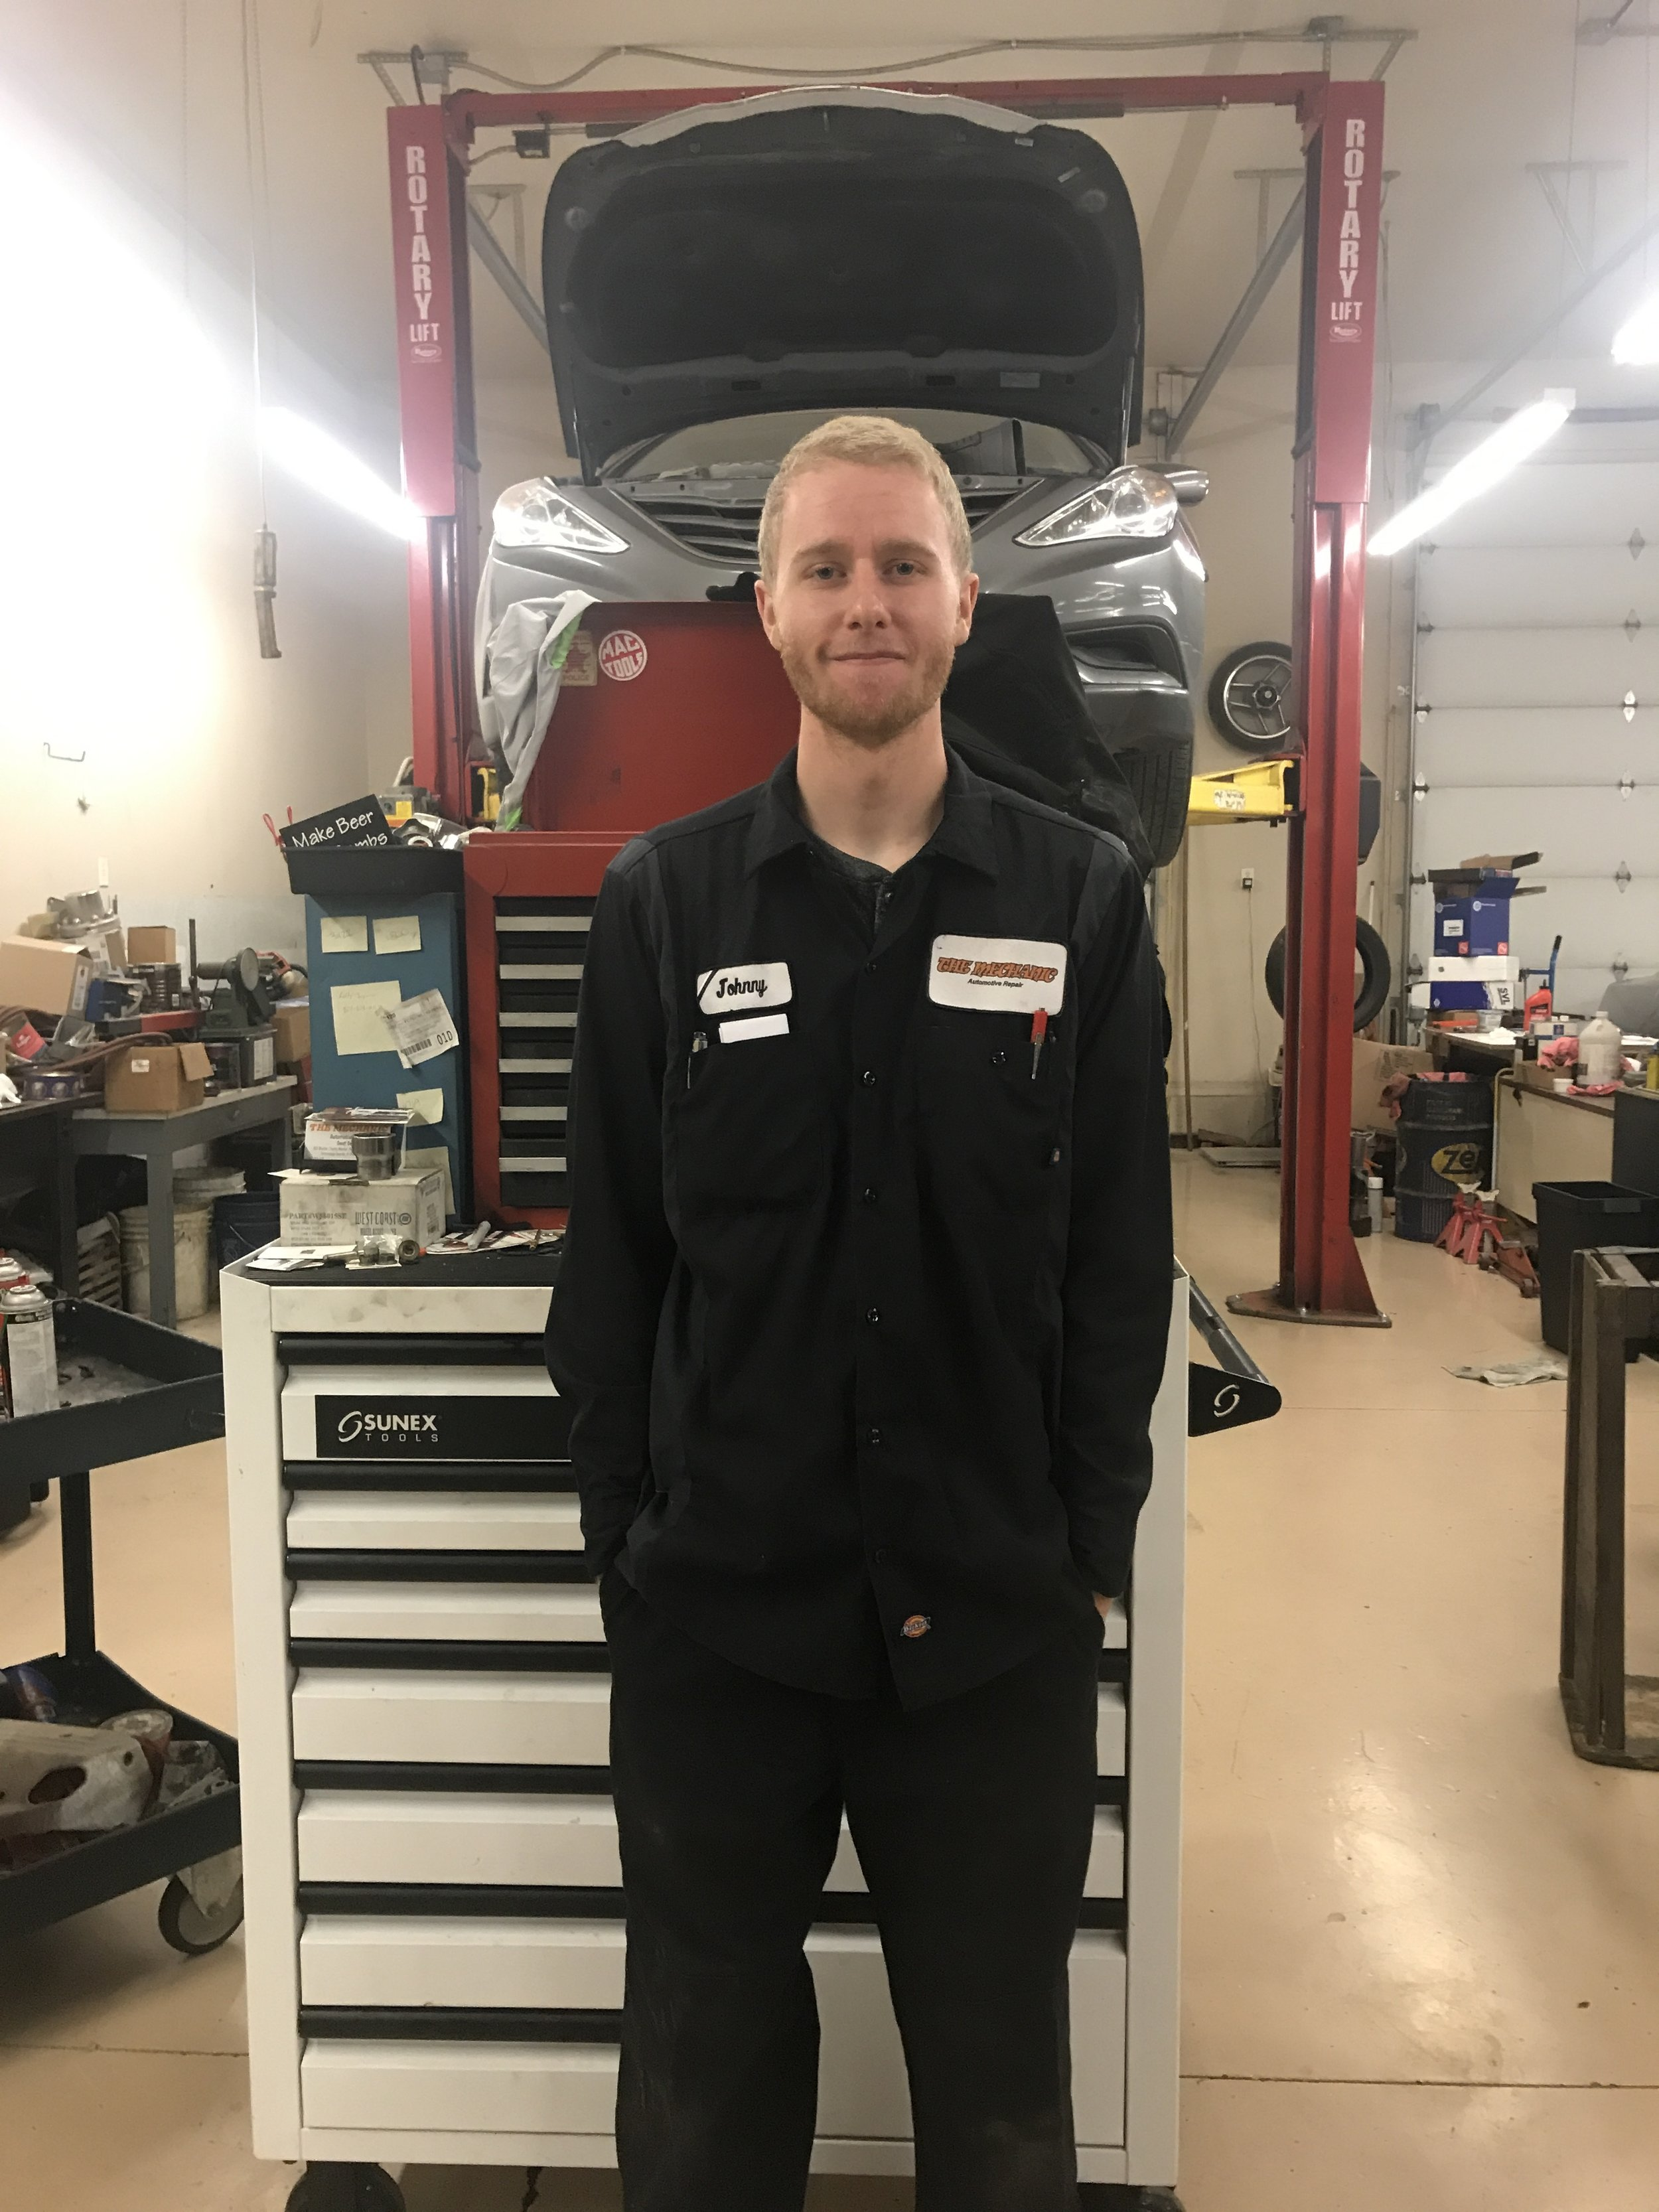 Johnny grew up in Bluffdale and graduated from Paradigm High School. He is currently working on an automotive technician degree from Salt Lake Community College.